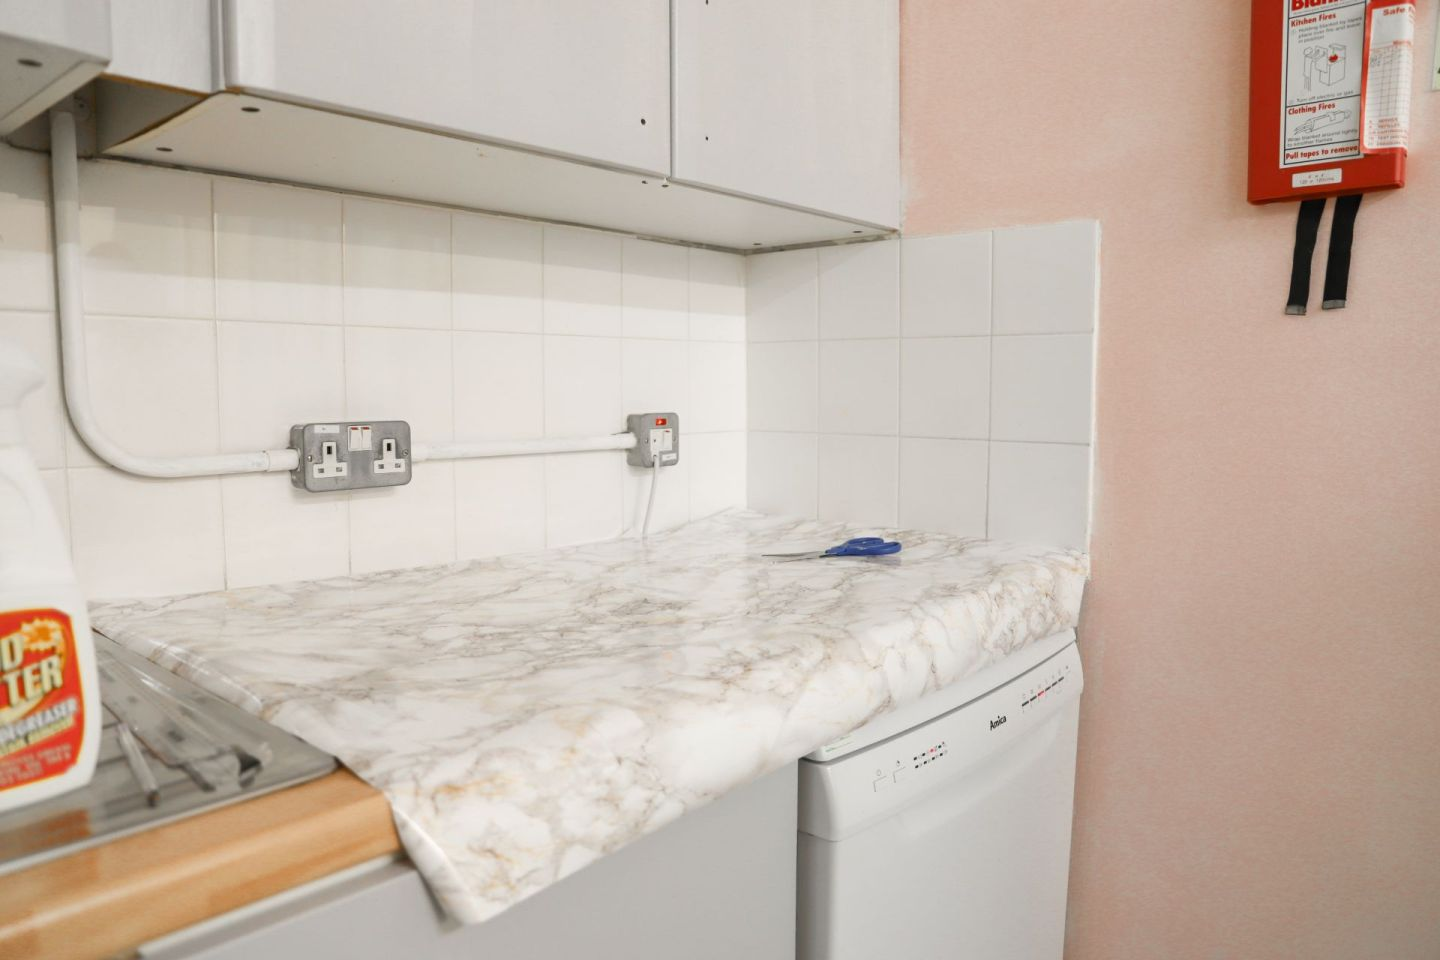 How to paint laminate/MDF kitchen cabinets